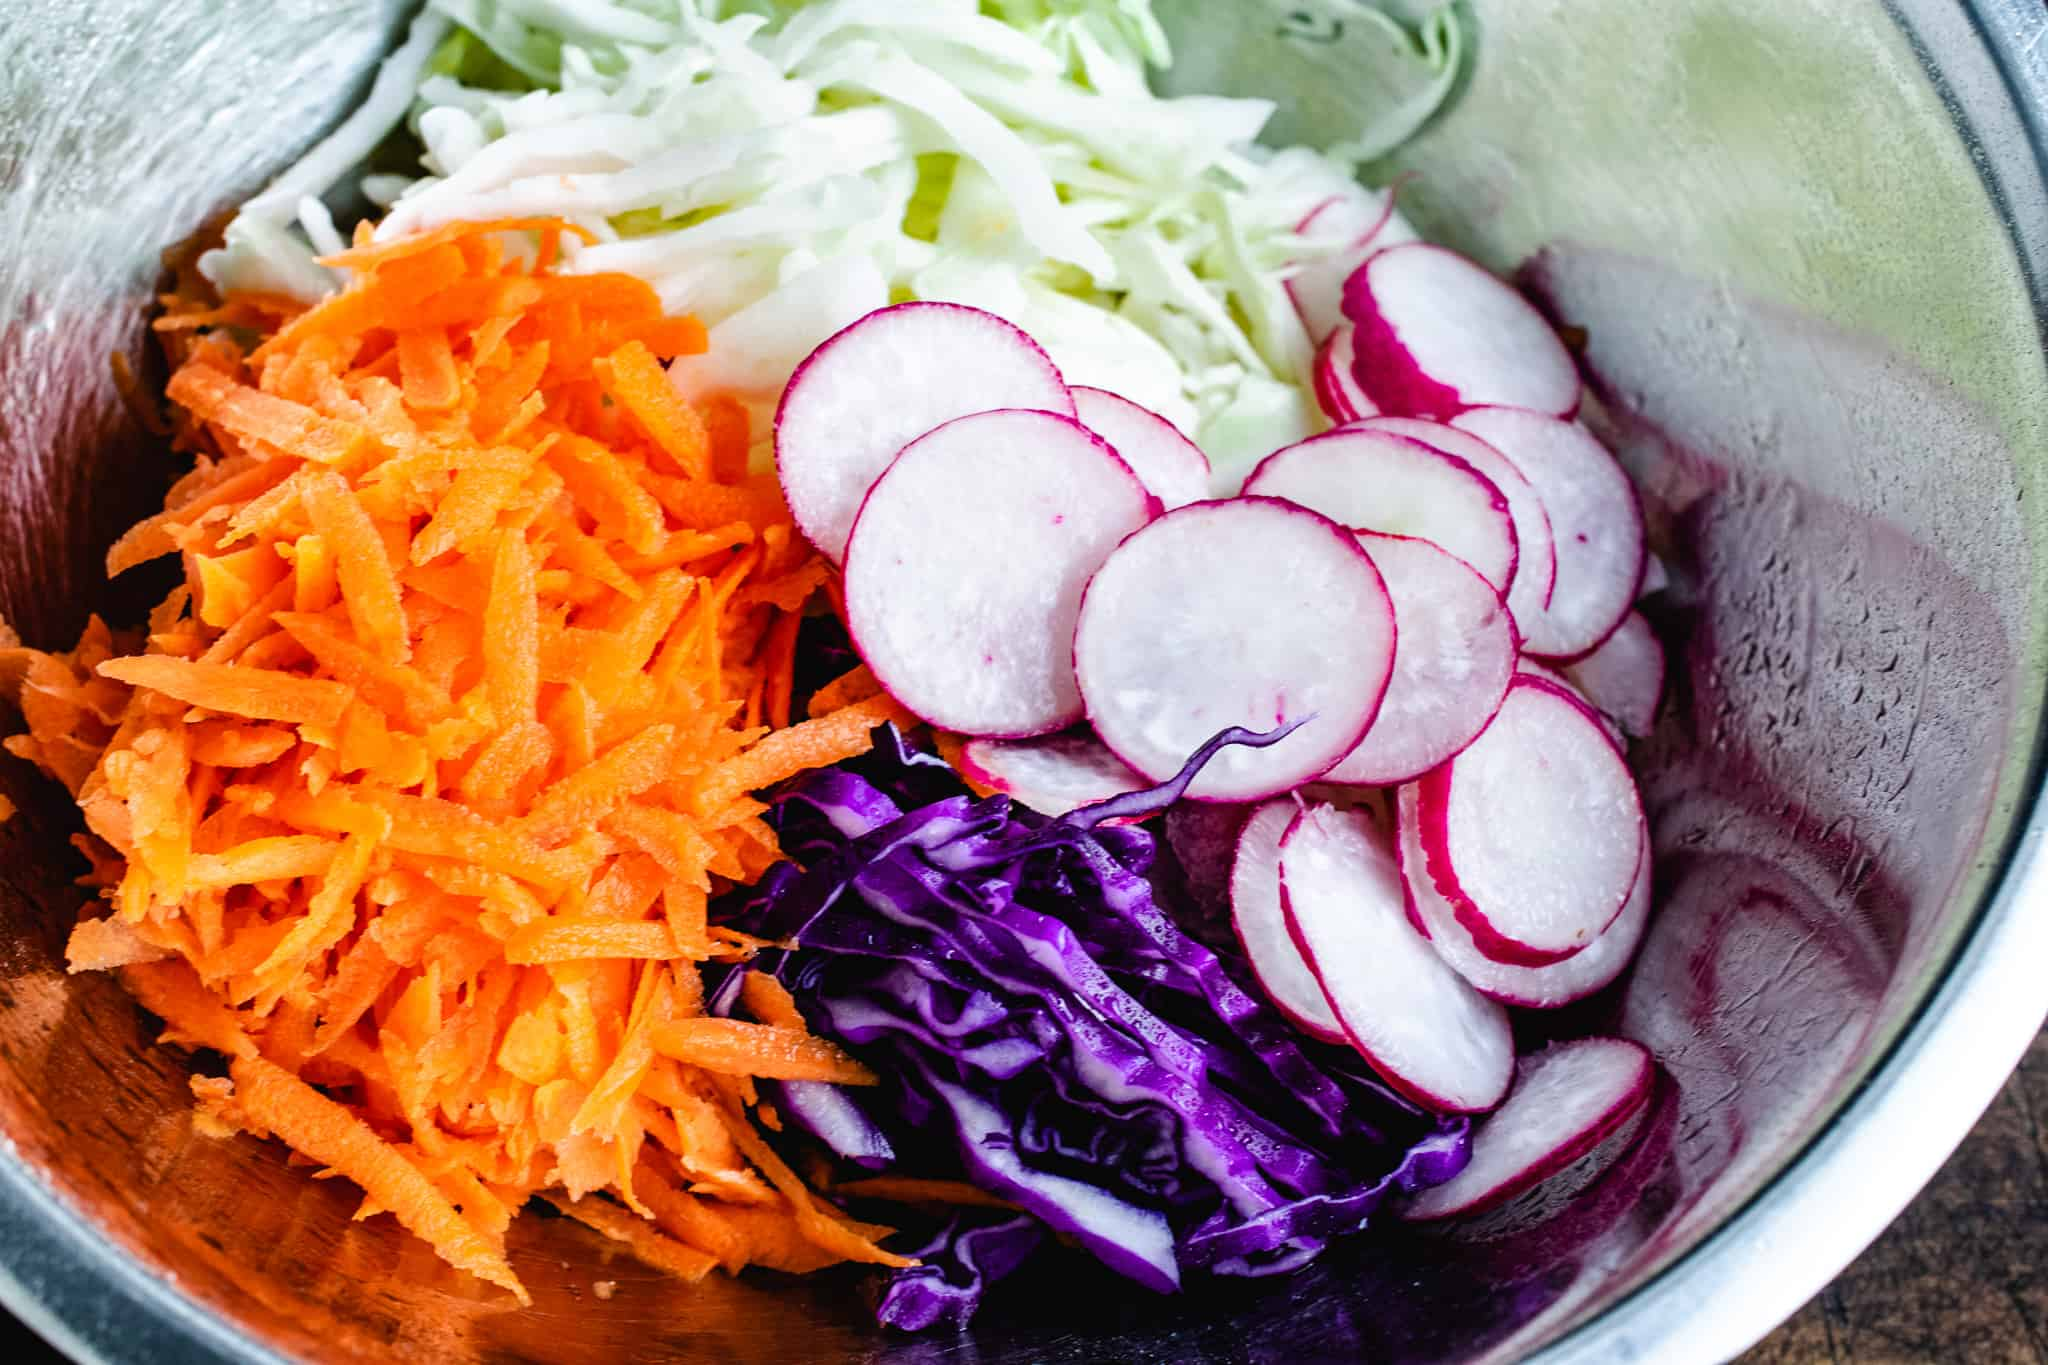 metal bowl of shredded carrots, red and green cabbage, and sliced radish for slaw